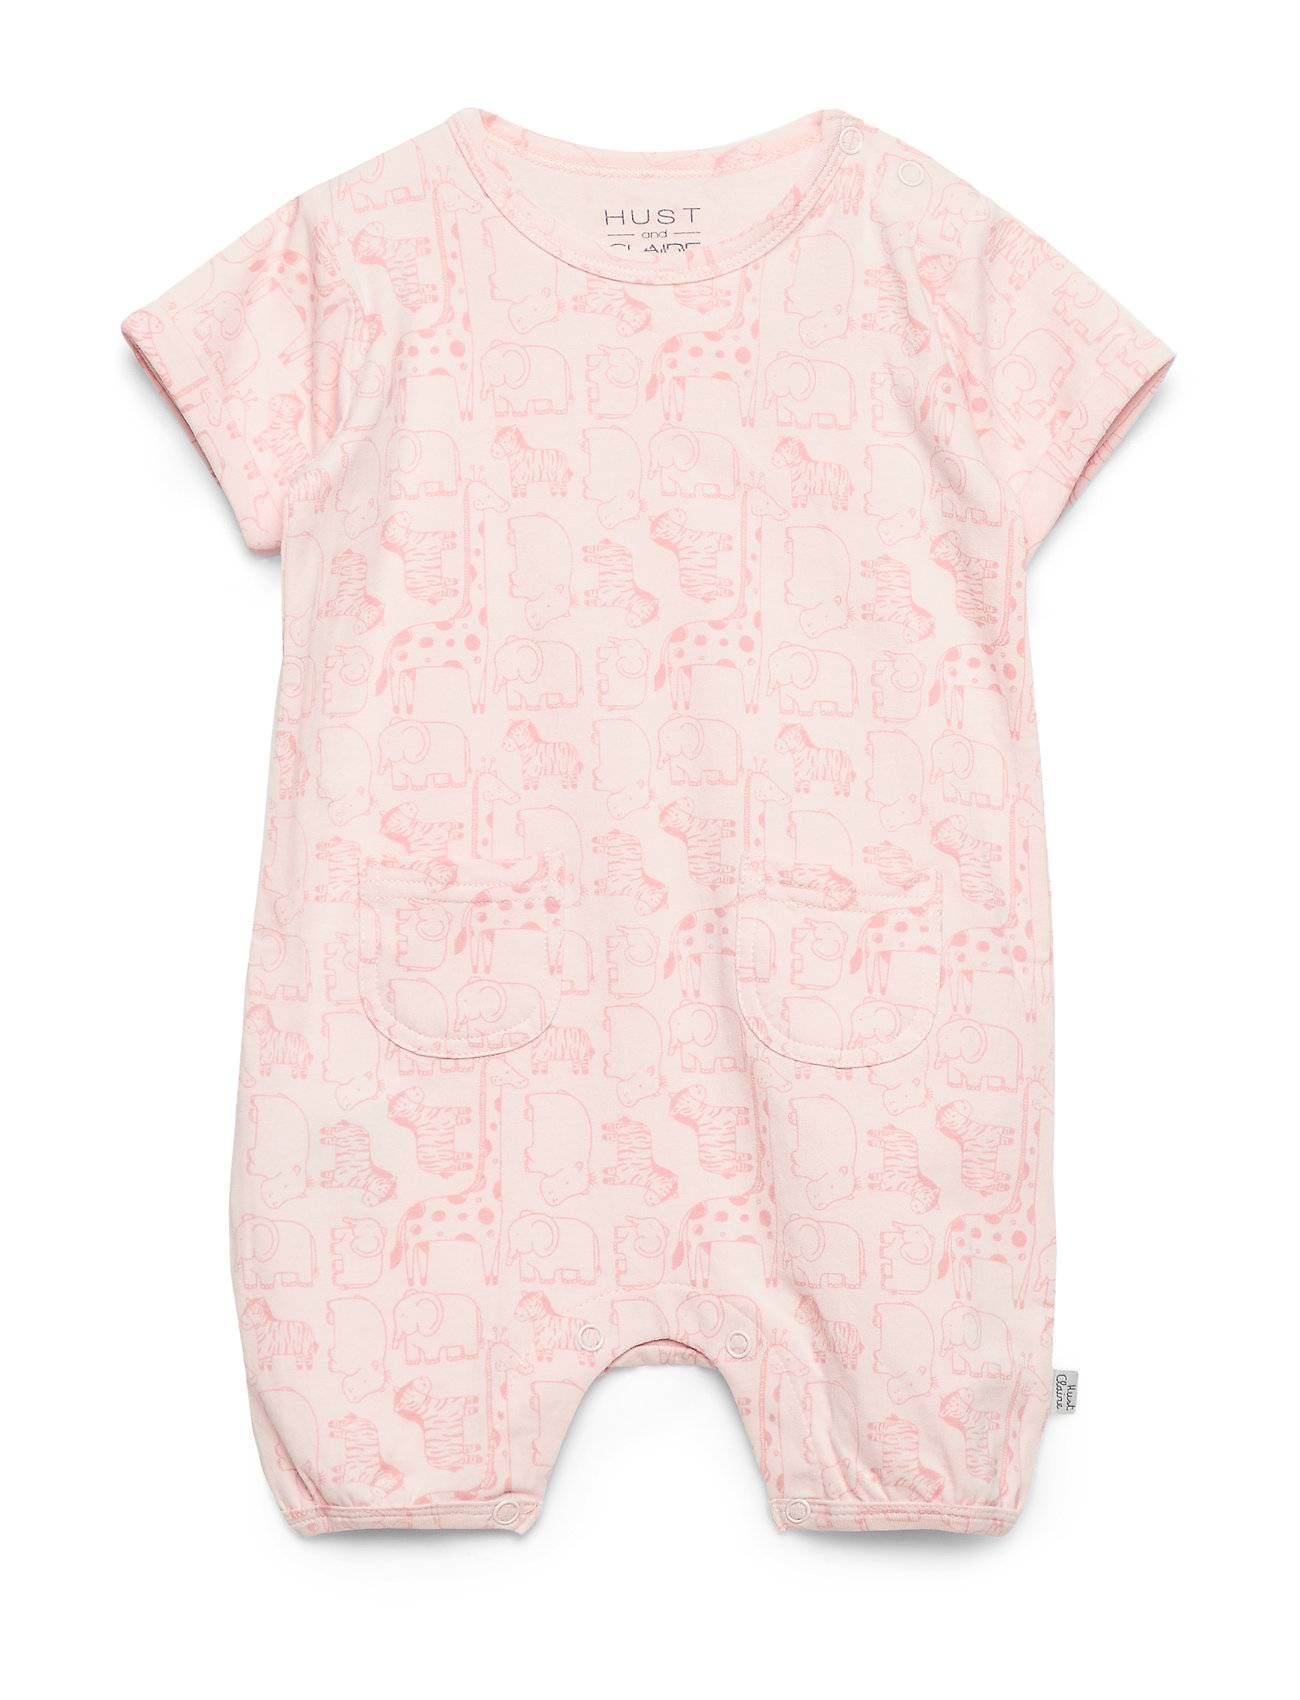 Hust & Claire Mali- Jumpsuit Bodysuits Short-sleeved Vaaleanpunainen Hust & Claire